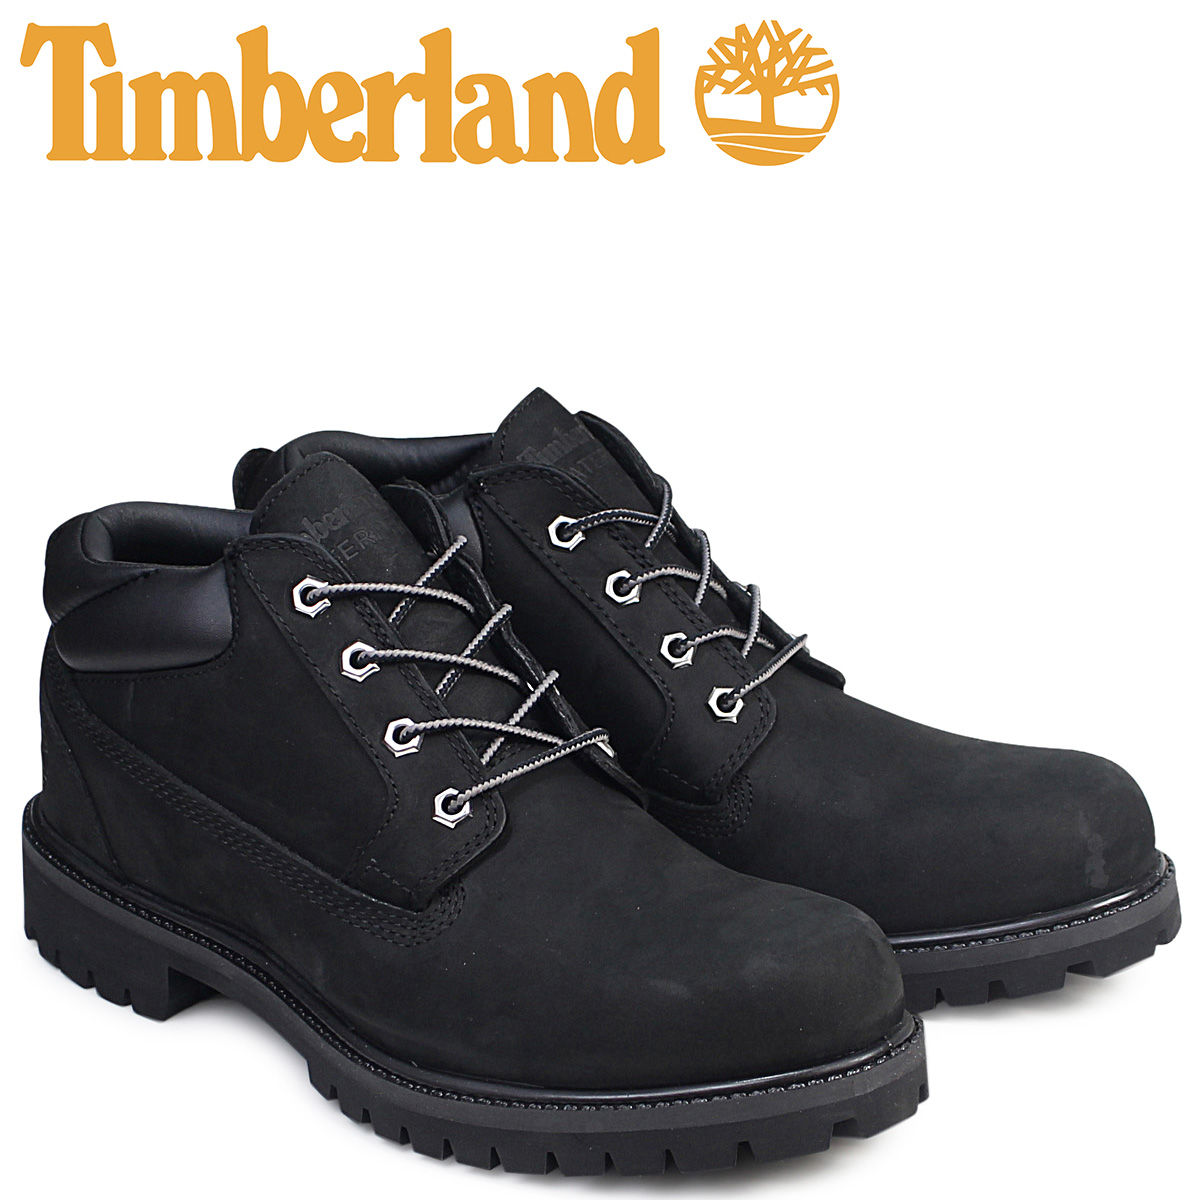 c42ecc7ed47 Timberland boots men Timberland Oxford CLASSIC OXFORD WATERPLOOF BOOTS  73,537W Wise classical music black black waterproofing